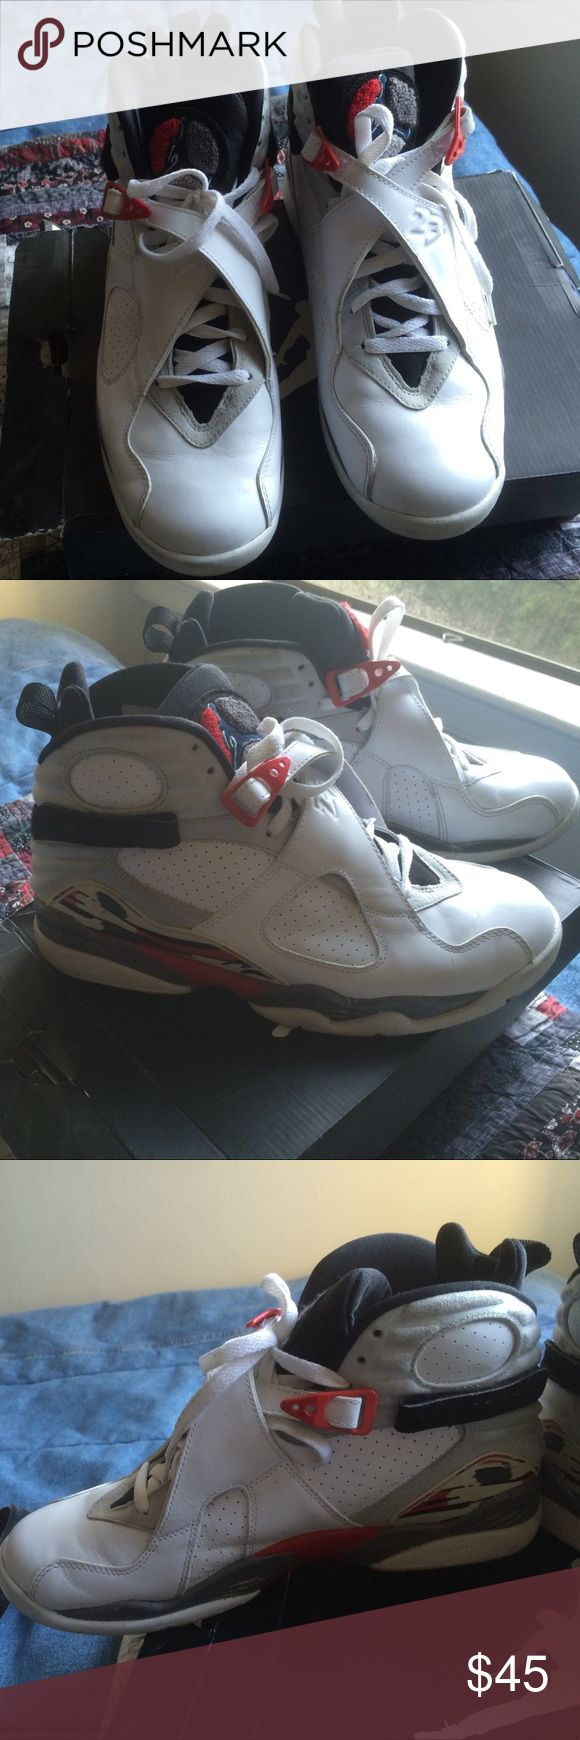 Air Jordan VIII (Retro) Okay condition. I'd say 6.5/10 just bc of the sides of the shoe. Looks pretty decent and they are at least 7-8years old. Jordan Shoes Sneakers